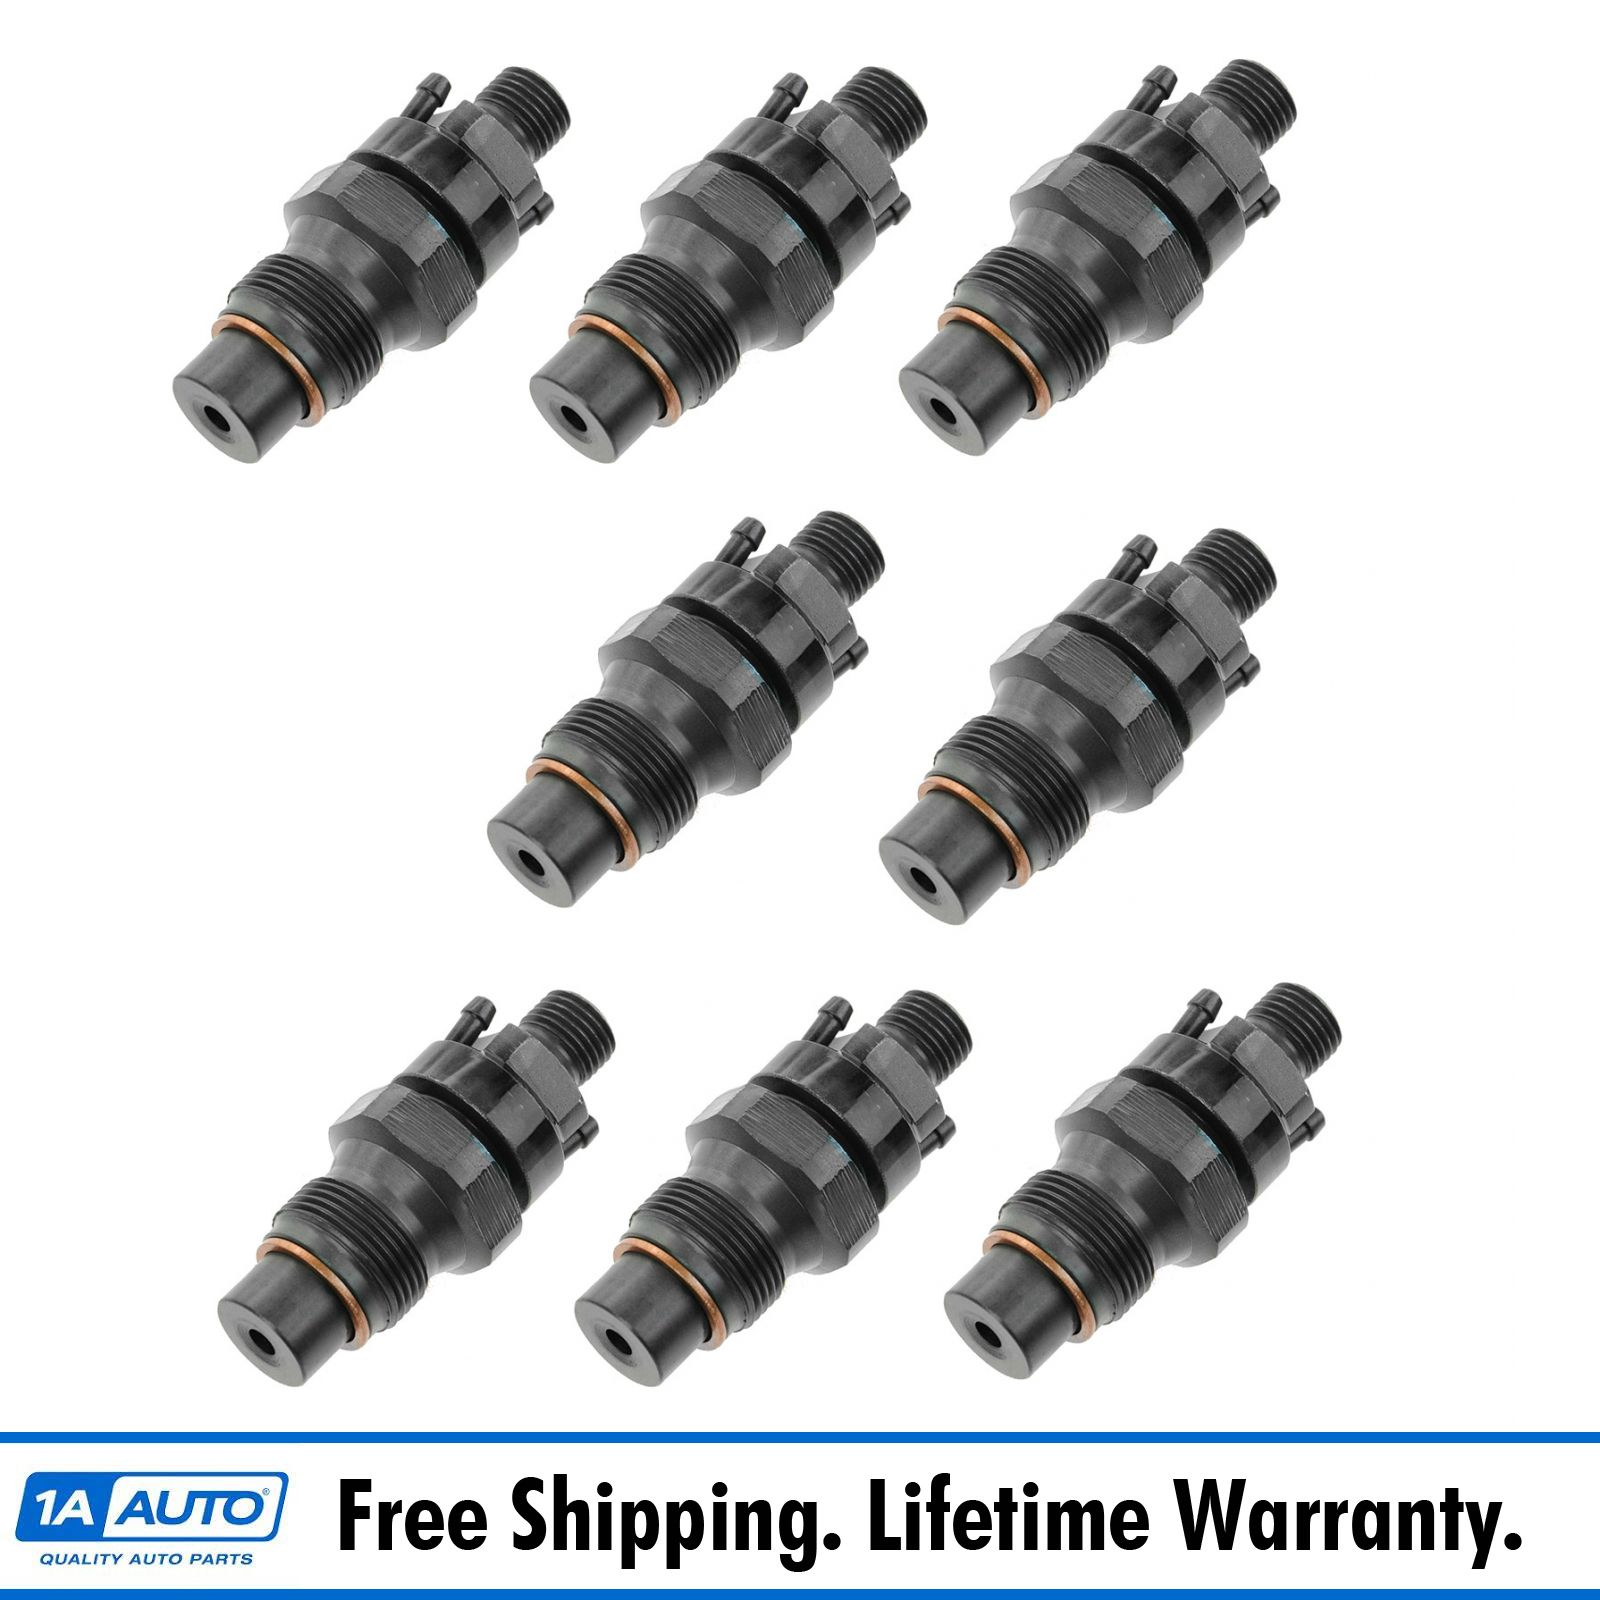 1997 Chevrolet G Series 3500 Camshaft: Fuel Injector Set Of 8 Kit For Chevy GMC Pickup Truck Van